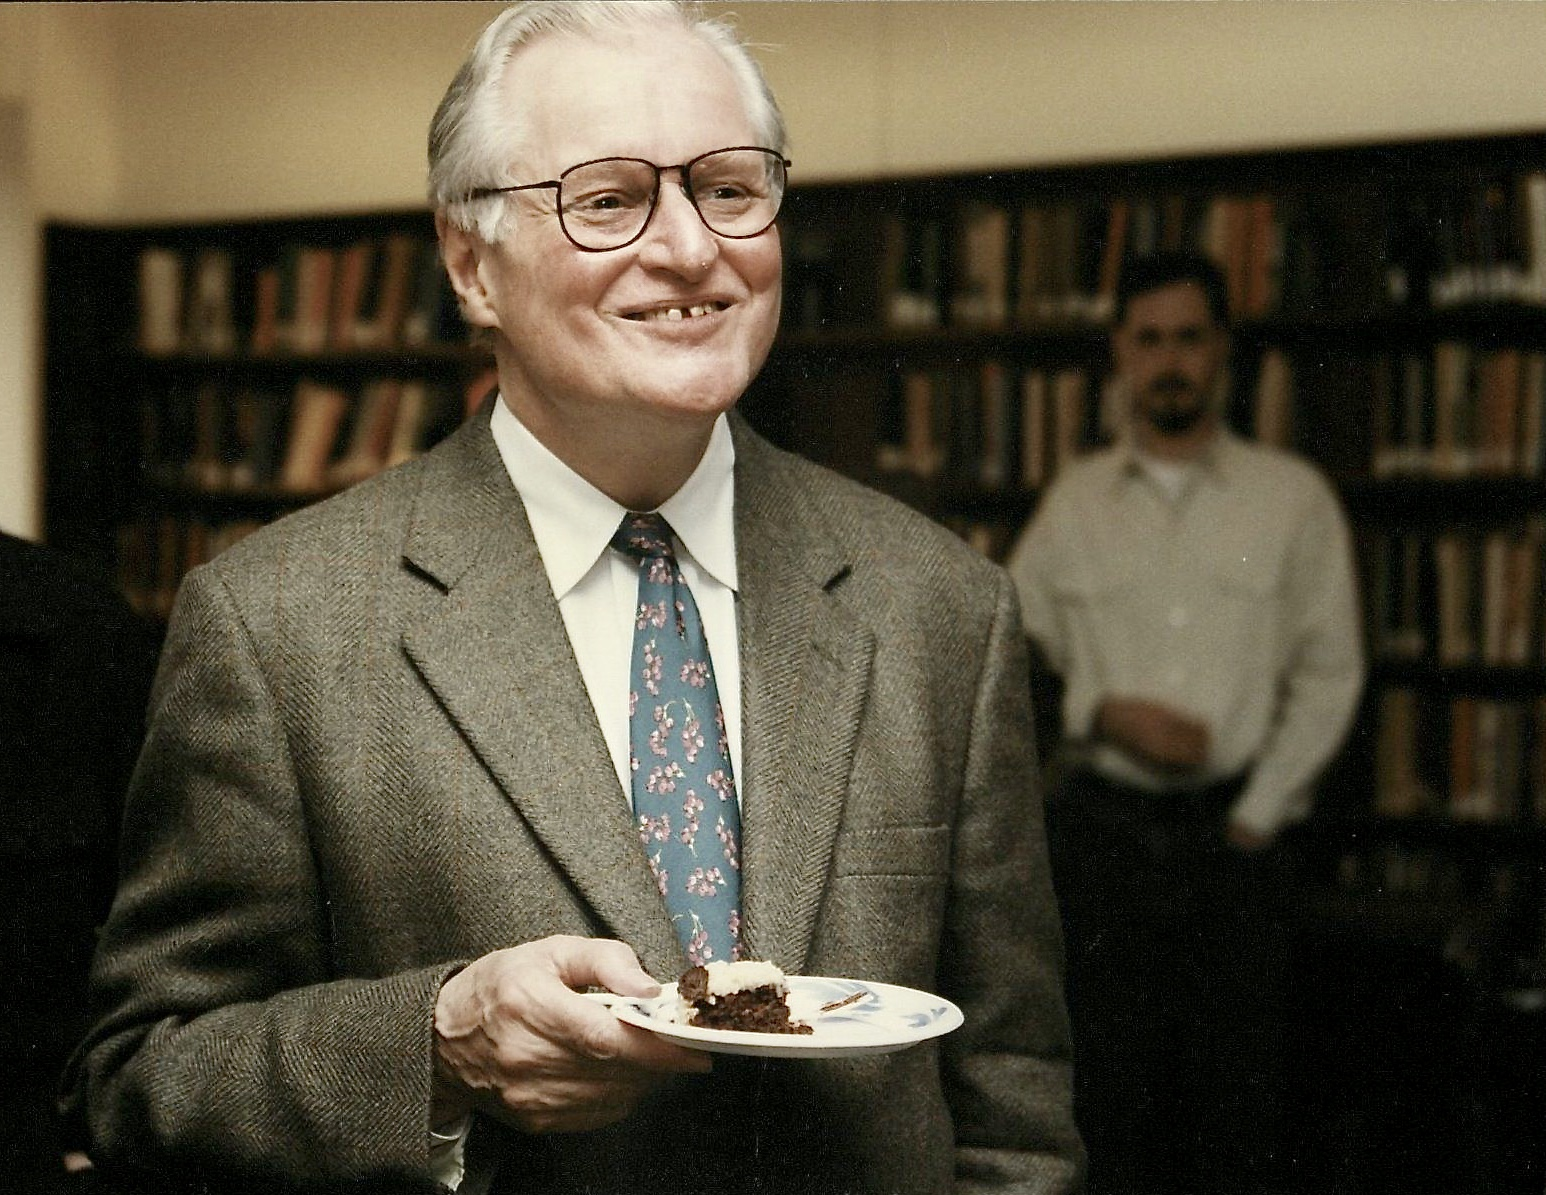 John Ashbery's 70th birthday celebration at the Poetry Room in 1997.